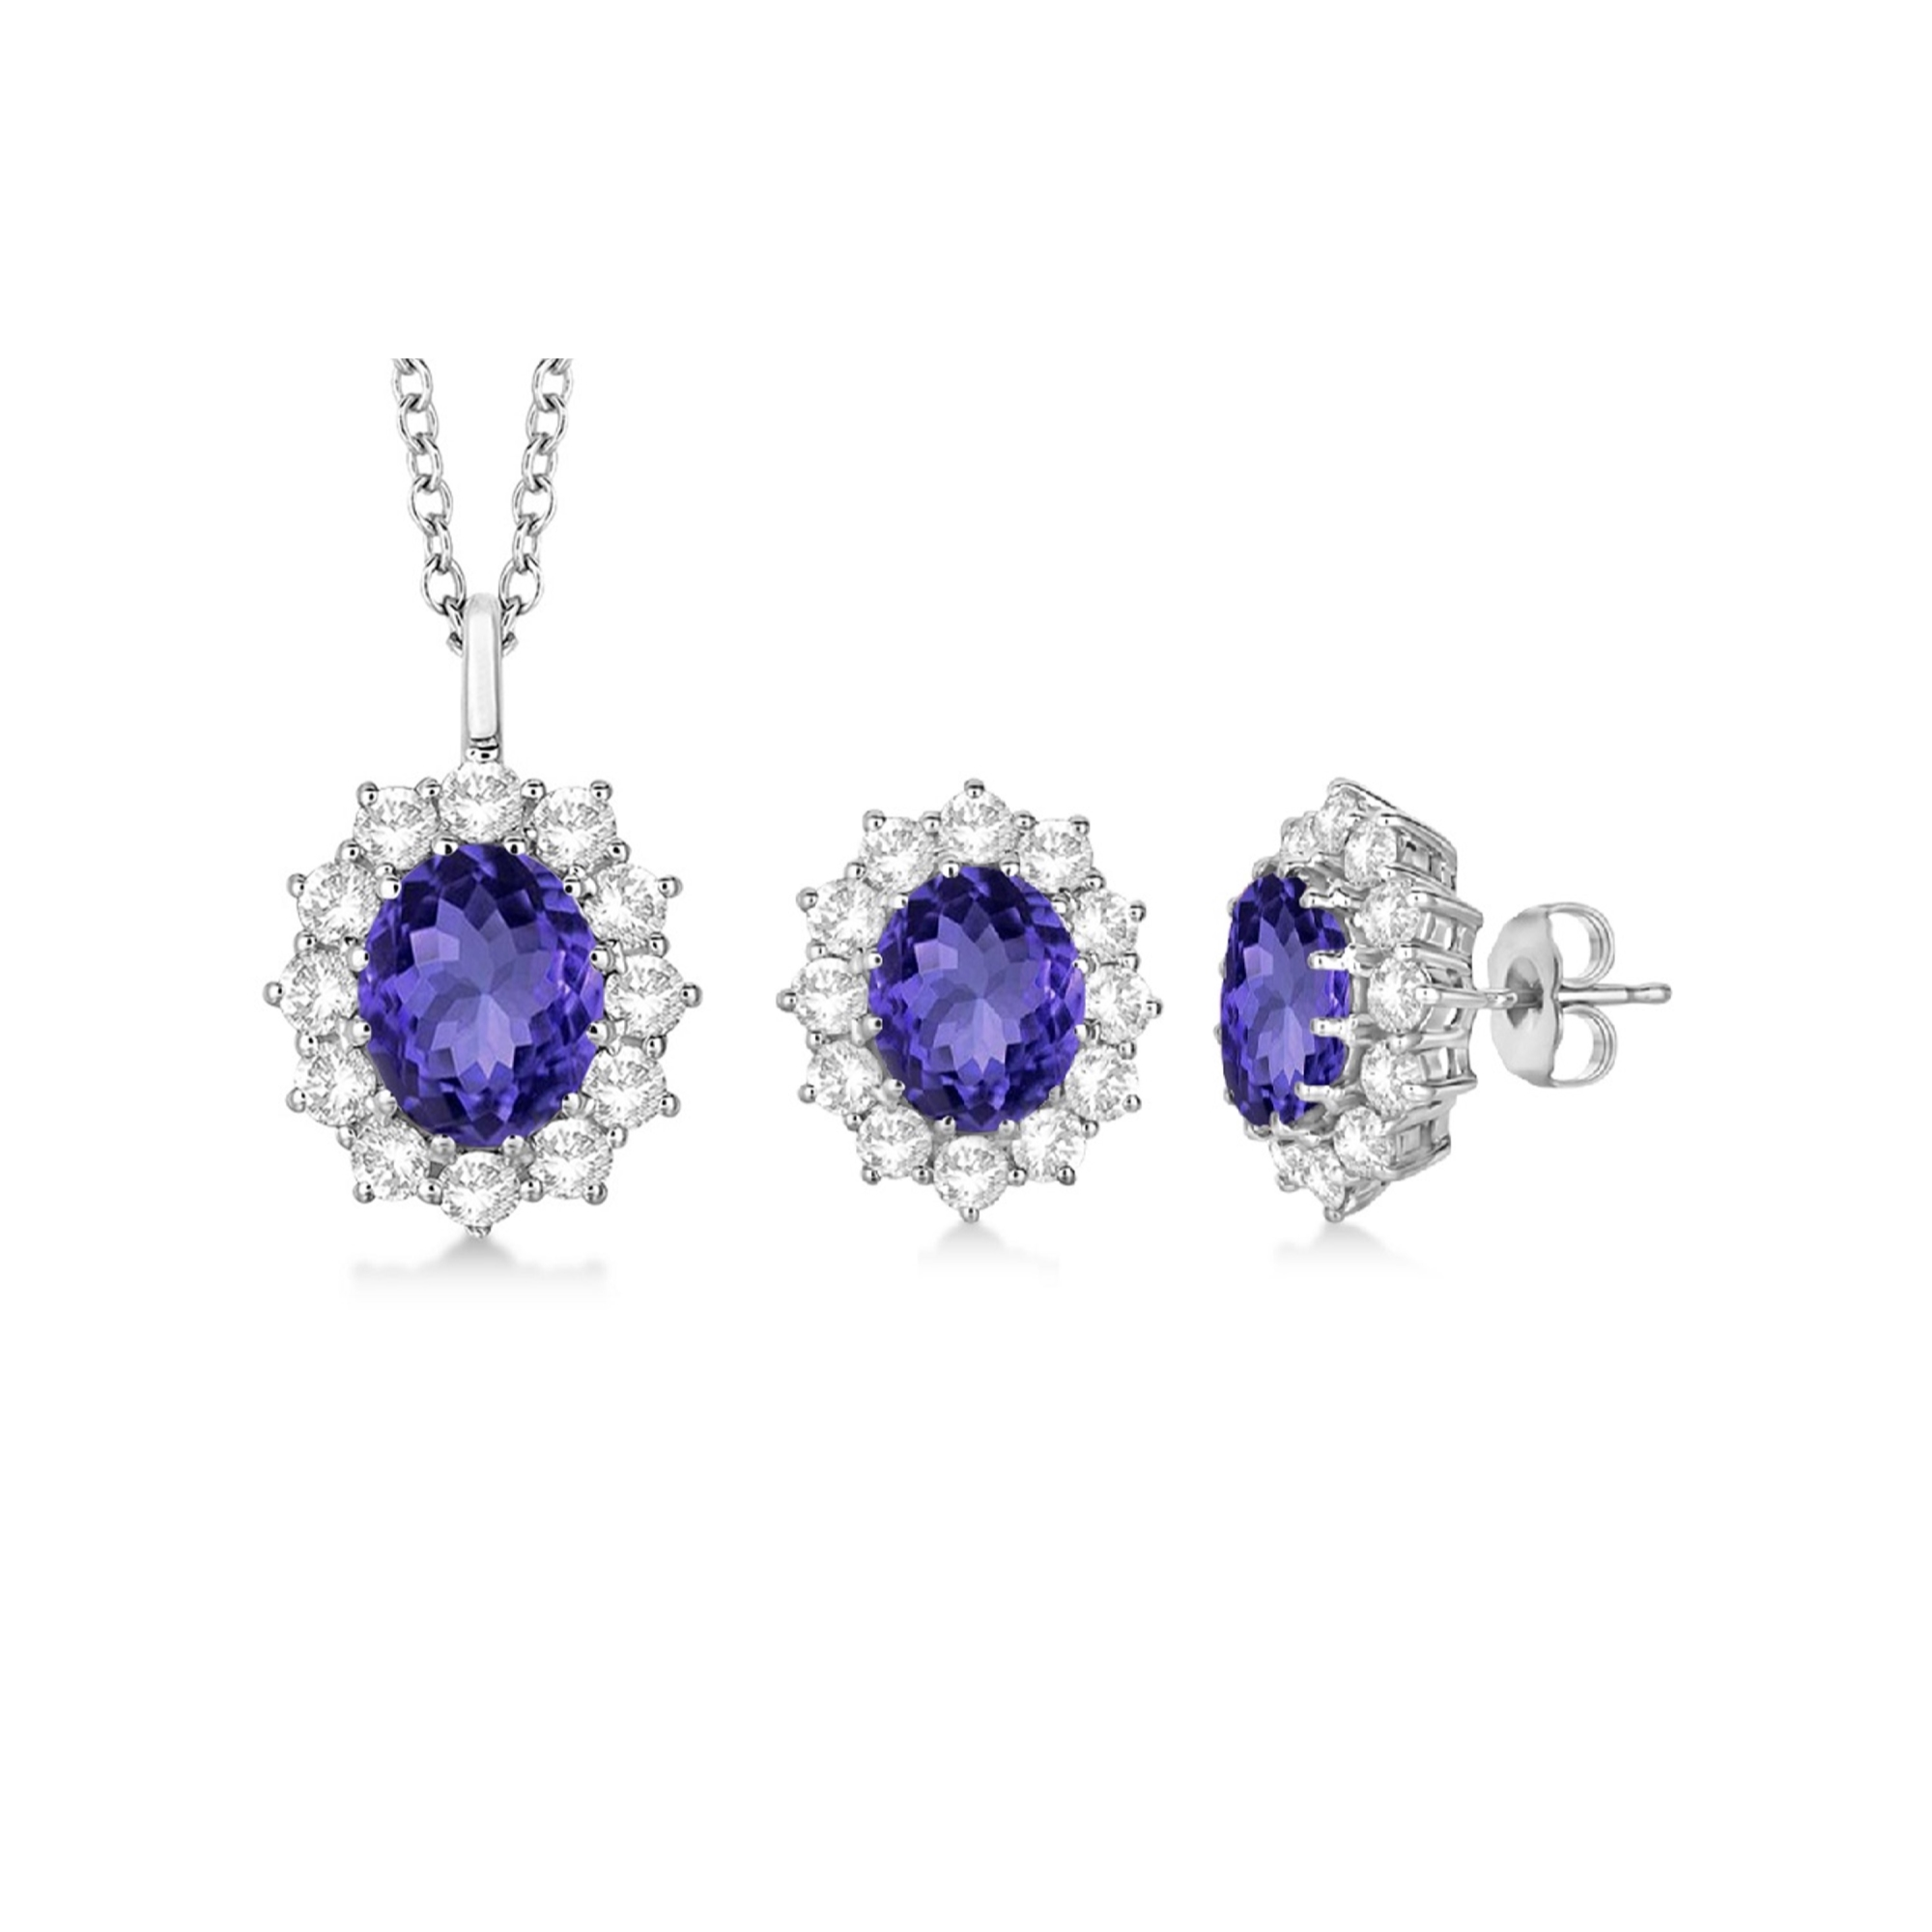 Beautiful 2.52 Carat Oval Shaped 6x4mm Natural Tanzanite With White Topaz Earrings And Necklace Set In 925 Sterling... by Diamond Princess